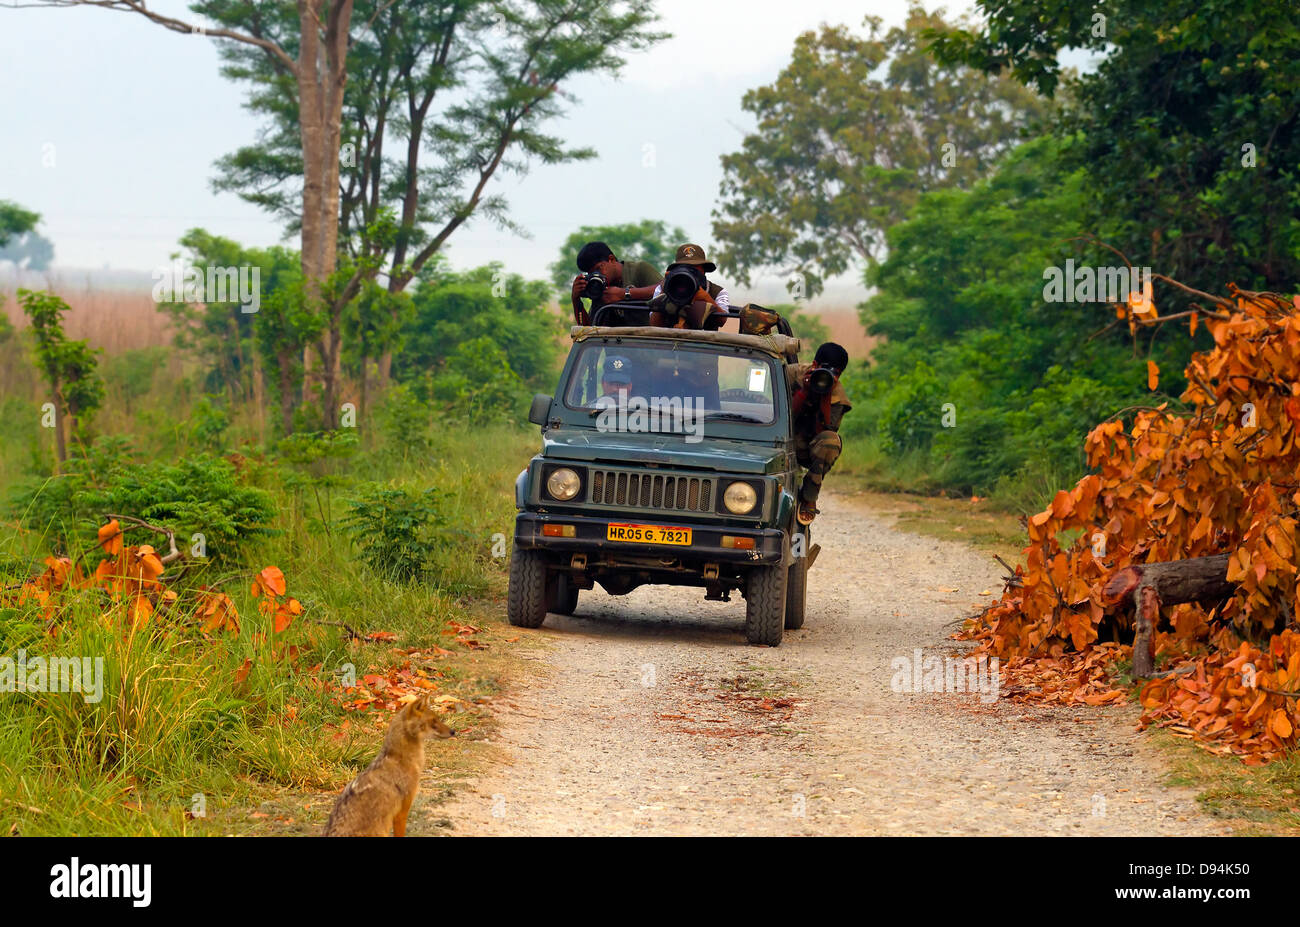 vehicle,Outdoor,People,Nature,Land vehicle,Non urban scene,Travel Locations,Wildlife tour,People traveling,Wildlife - Stock Image